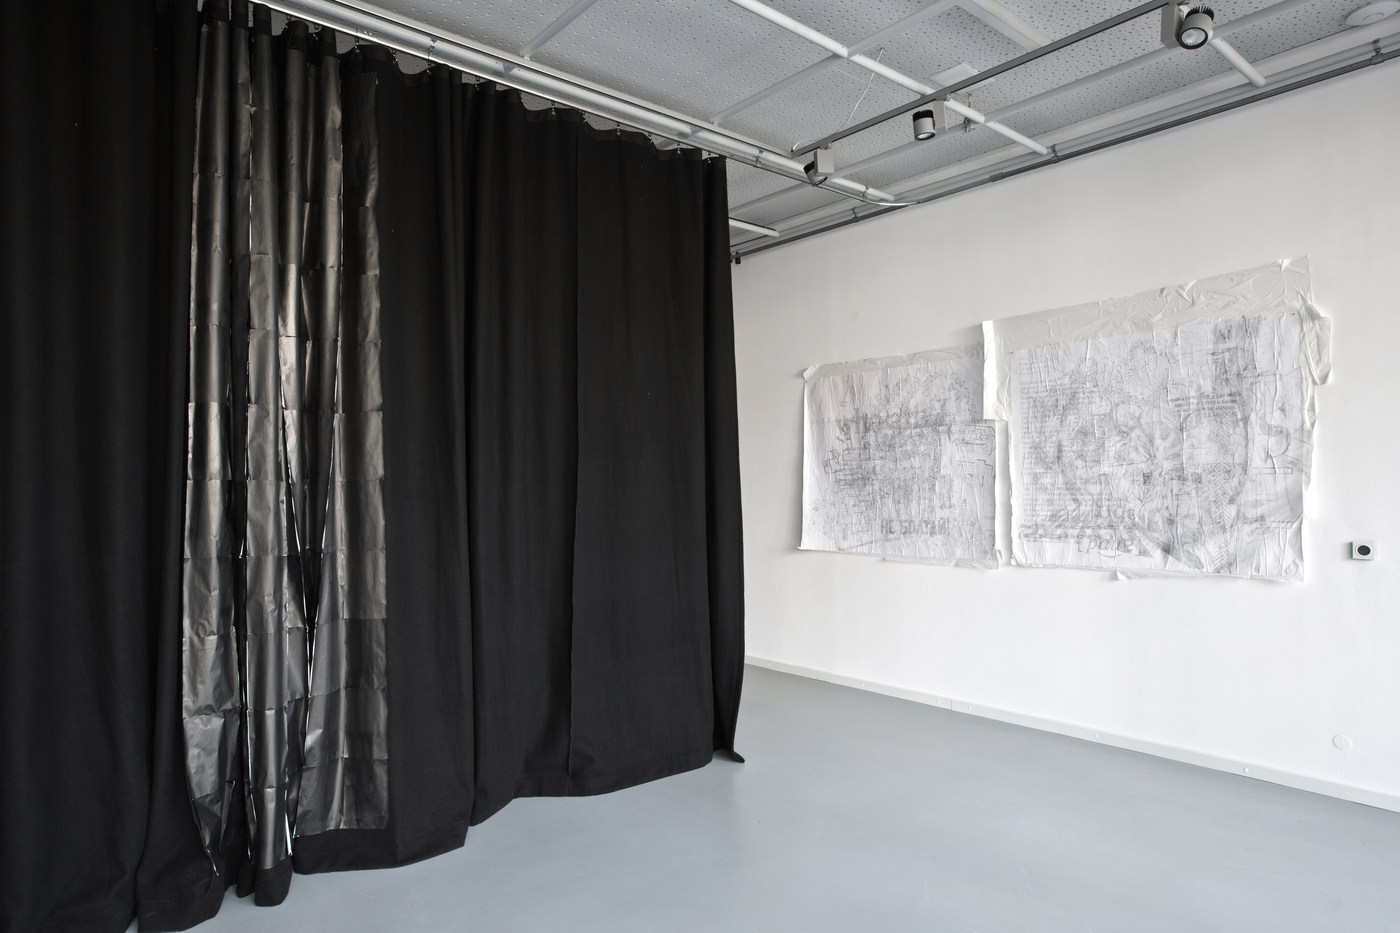 23_hybridscapes_exhibition_view_nida_art_colony